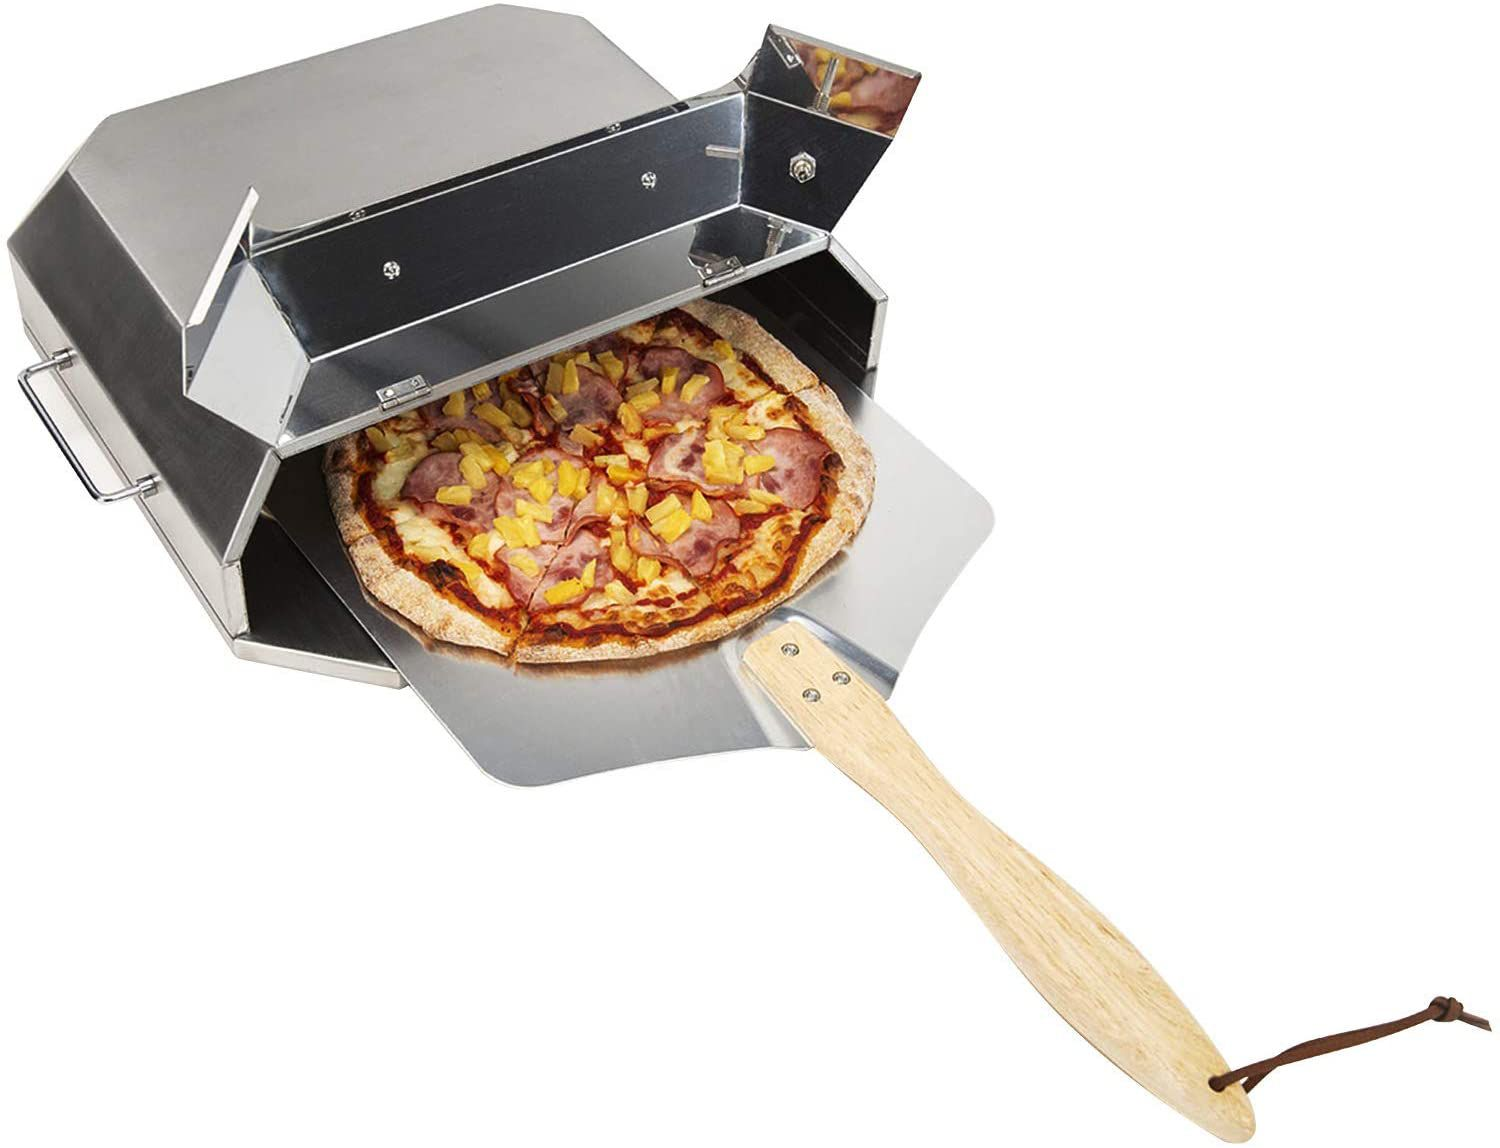 Onlyfire Universal Stainless Steel Pizza Oven Kit